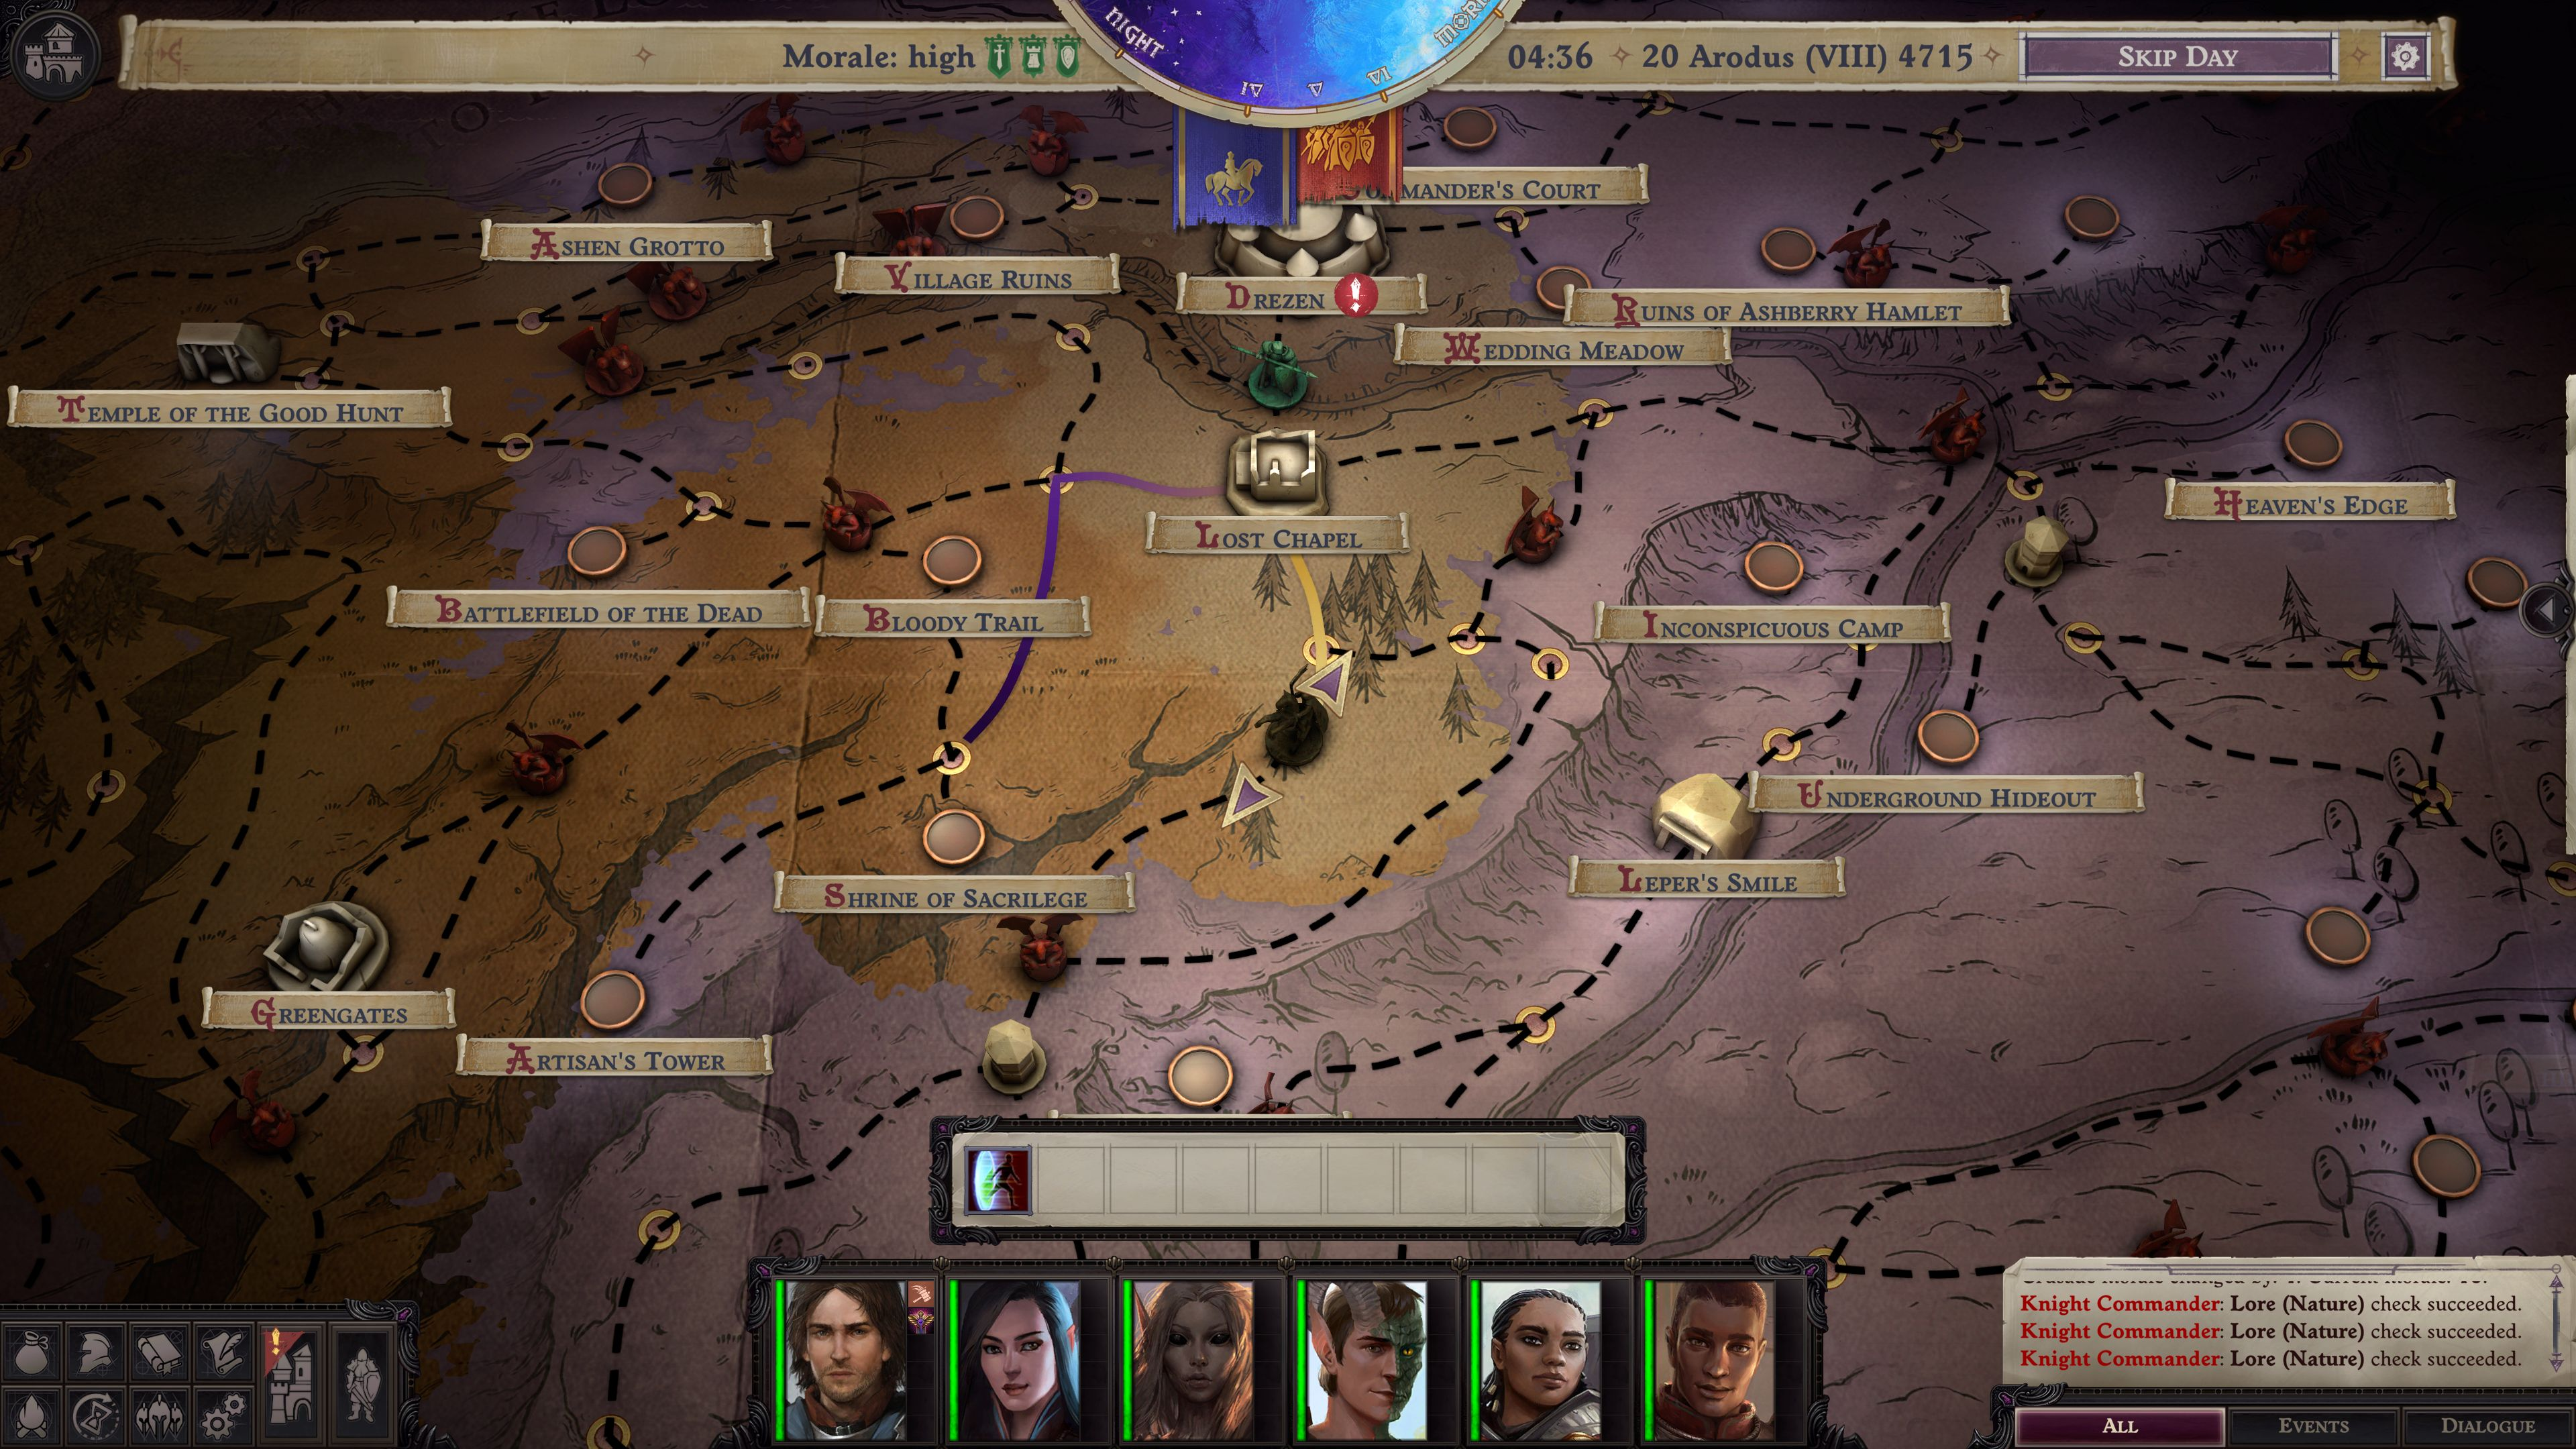 A party crosses the overland map of the Worldwound